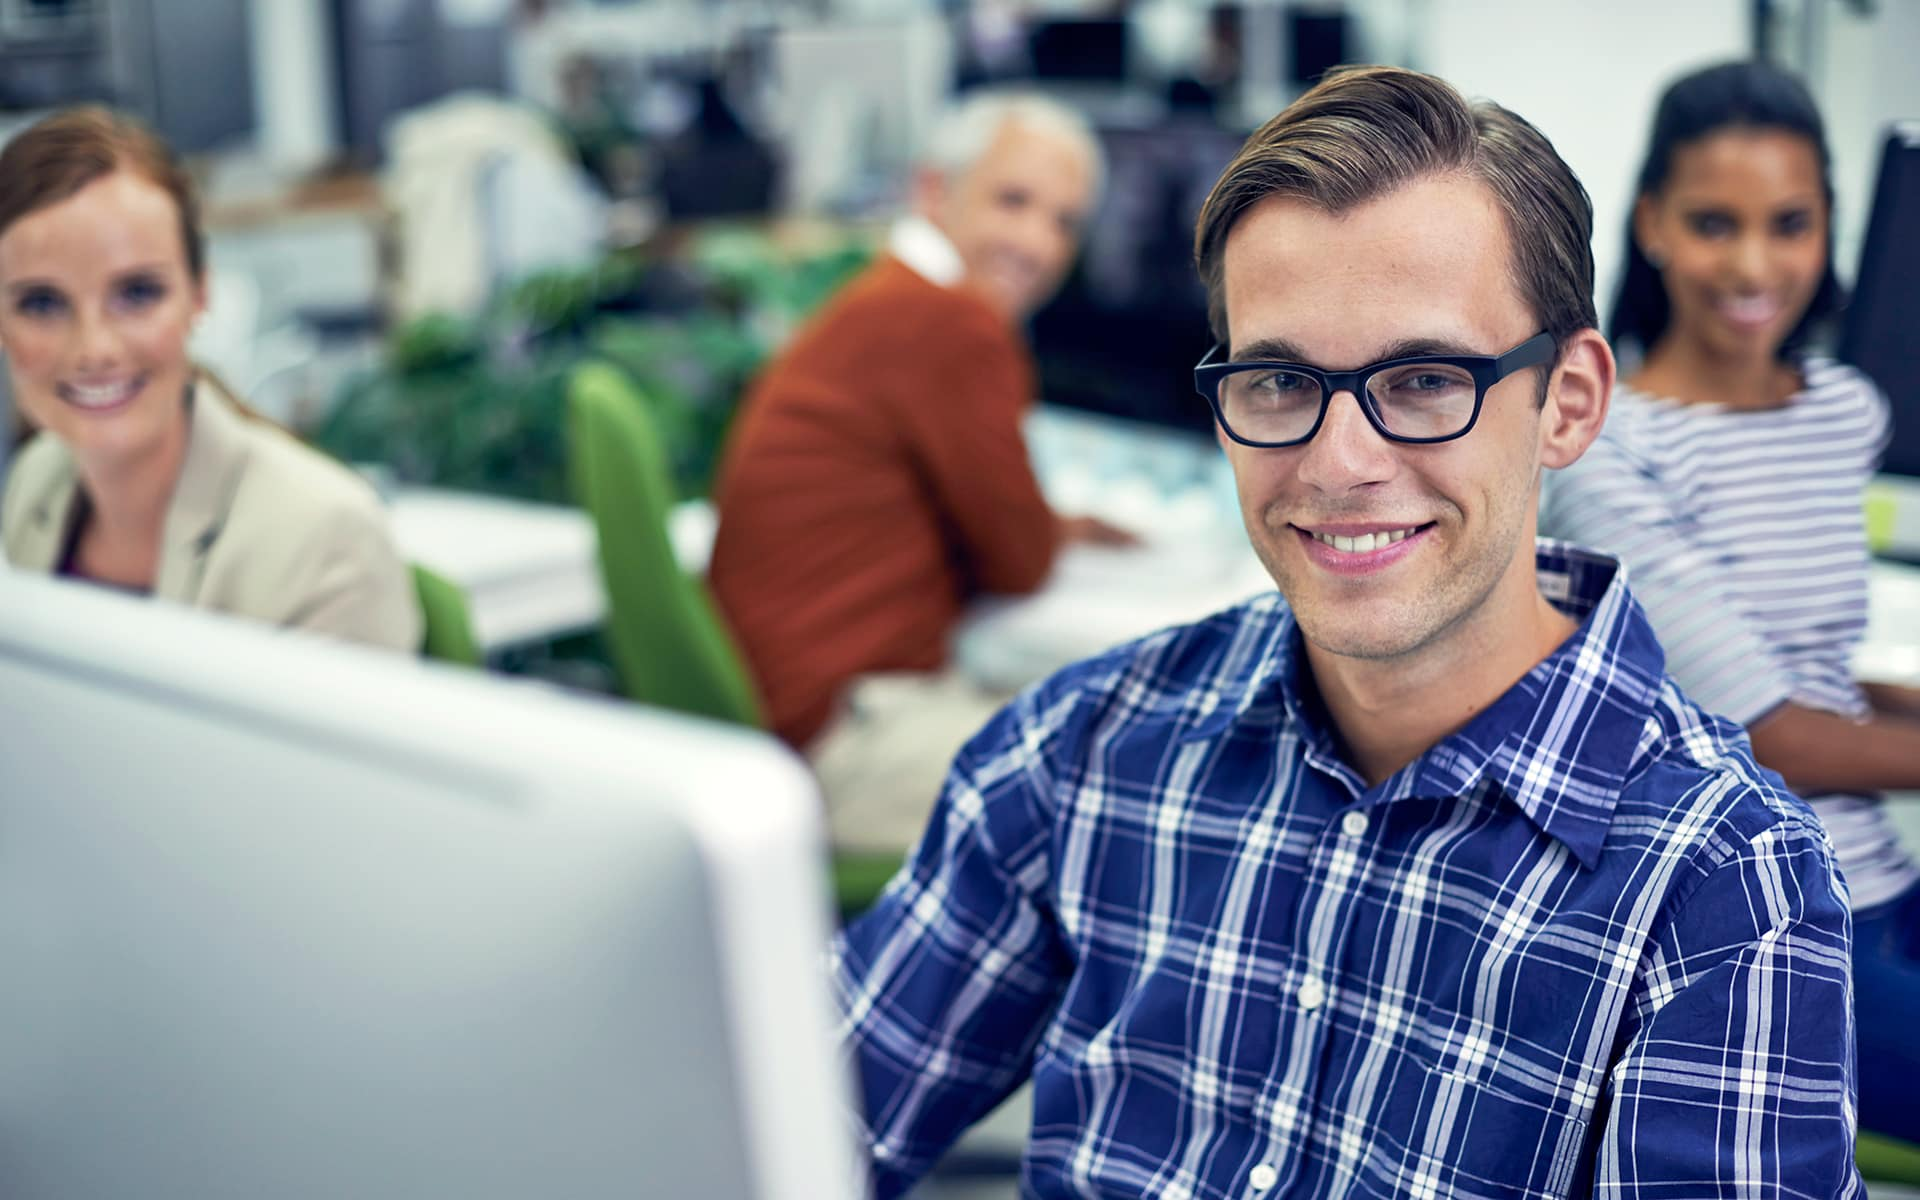 Process Oriented Implementation of SAP projects - Young man in front of a computer